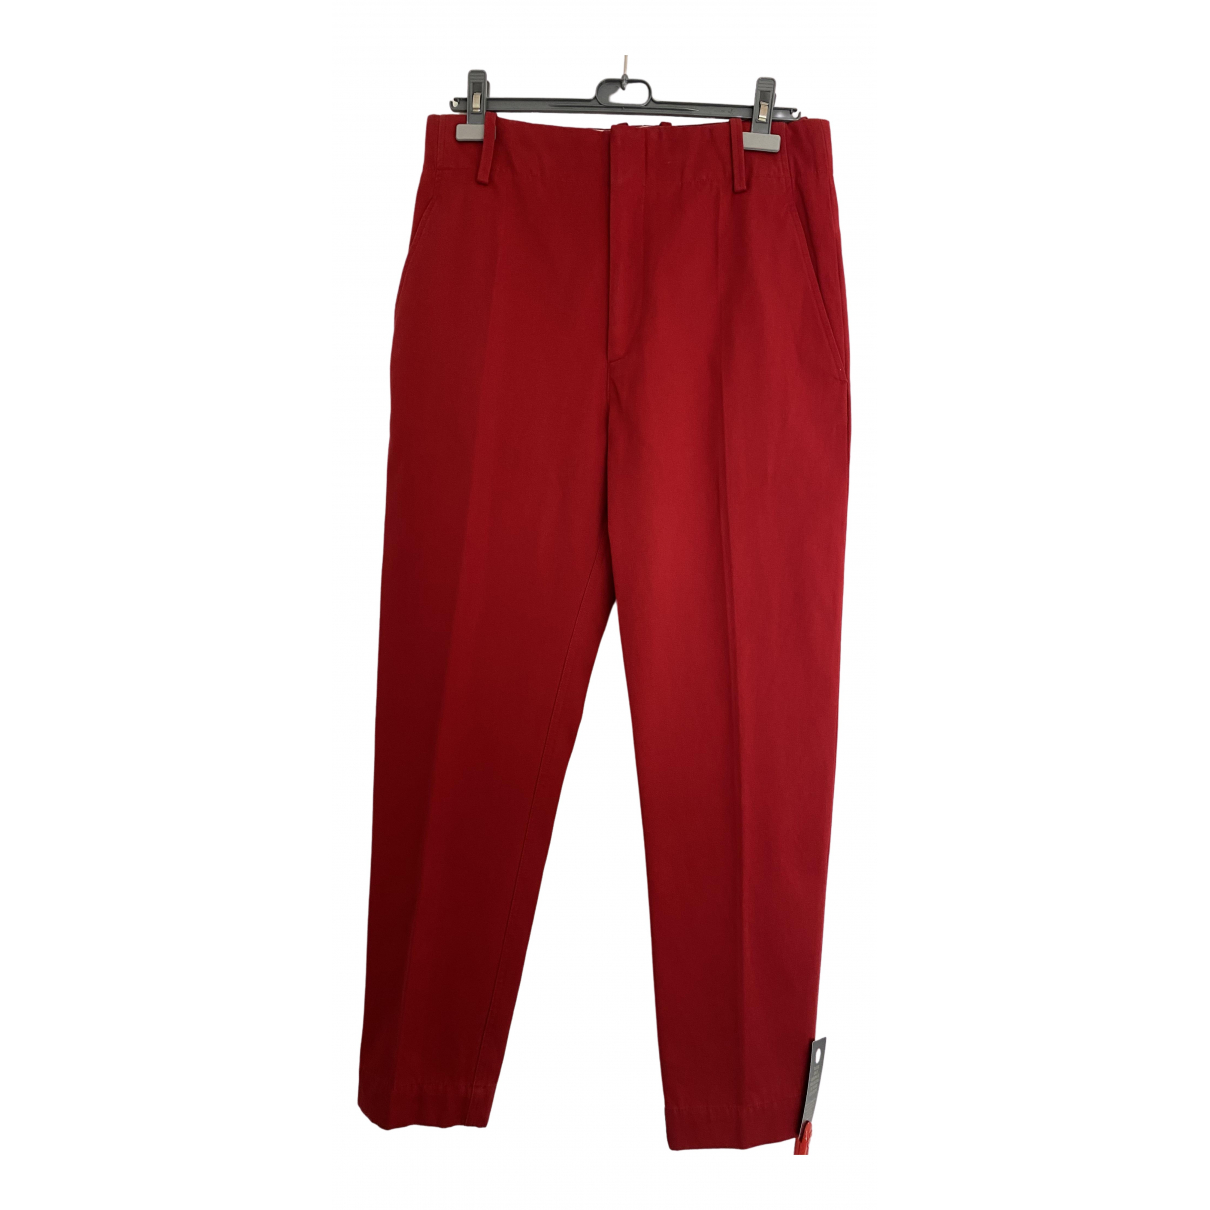 Isabel Marant Etoile \N Red Cotton Trousers for Women 40 IT